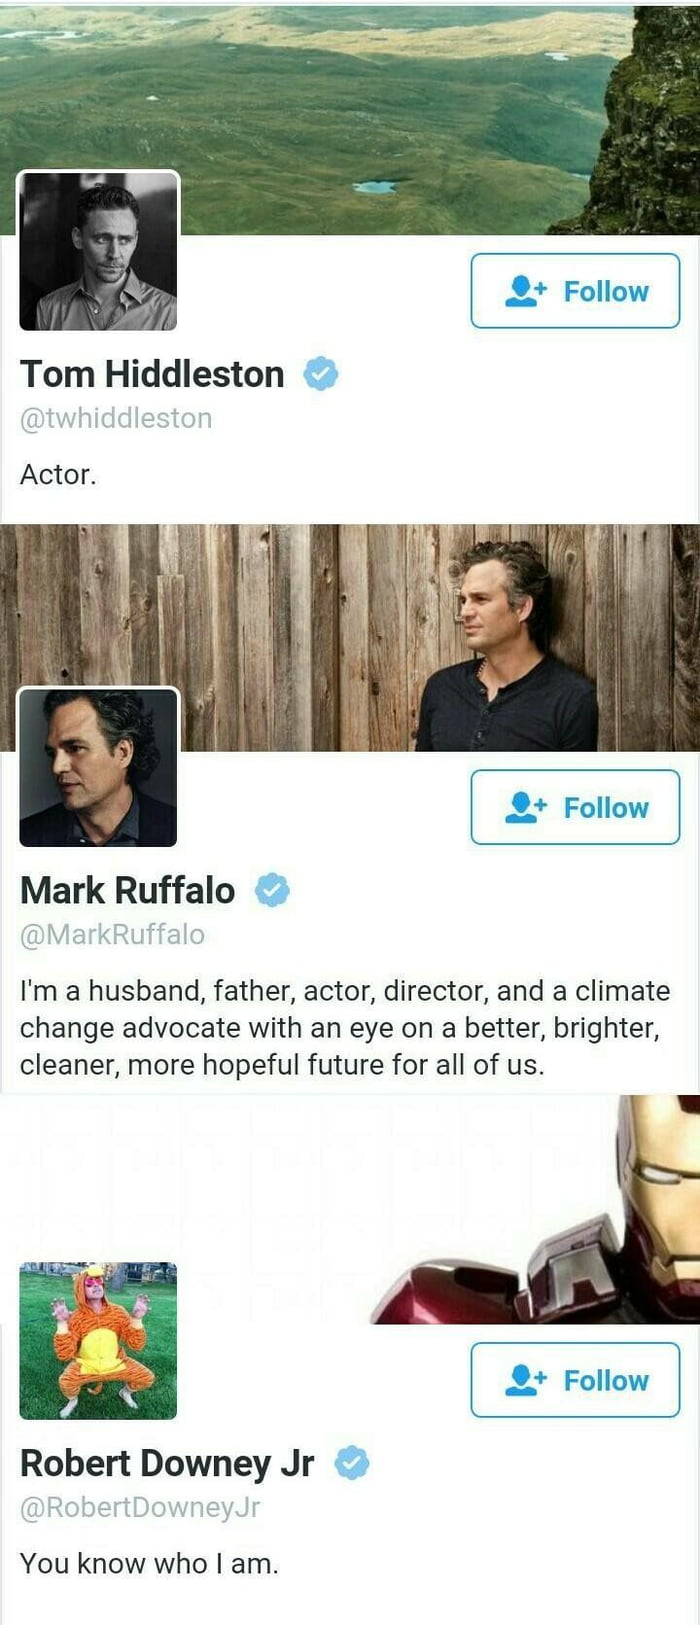 tom hiddleston, actor, mark ruffalo, i'm a husband, father, actor, director, and a climate change advocated with an eye on a better brighter cleaner more hopeful future for all, robert downey jr, you know who i am